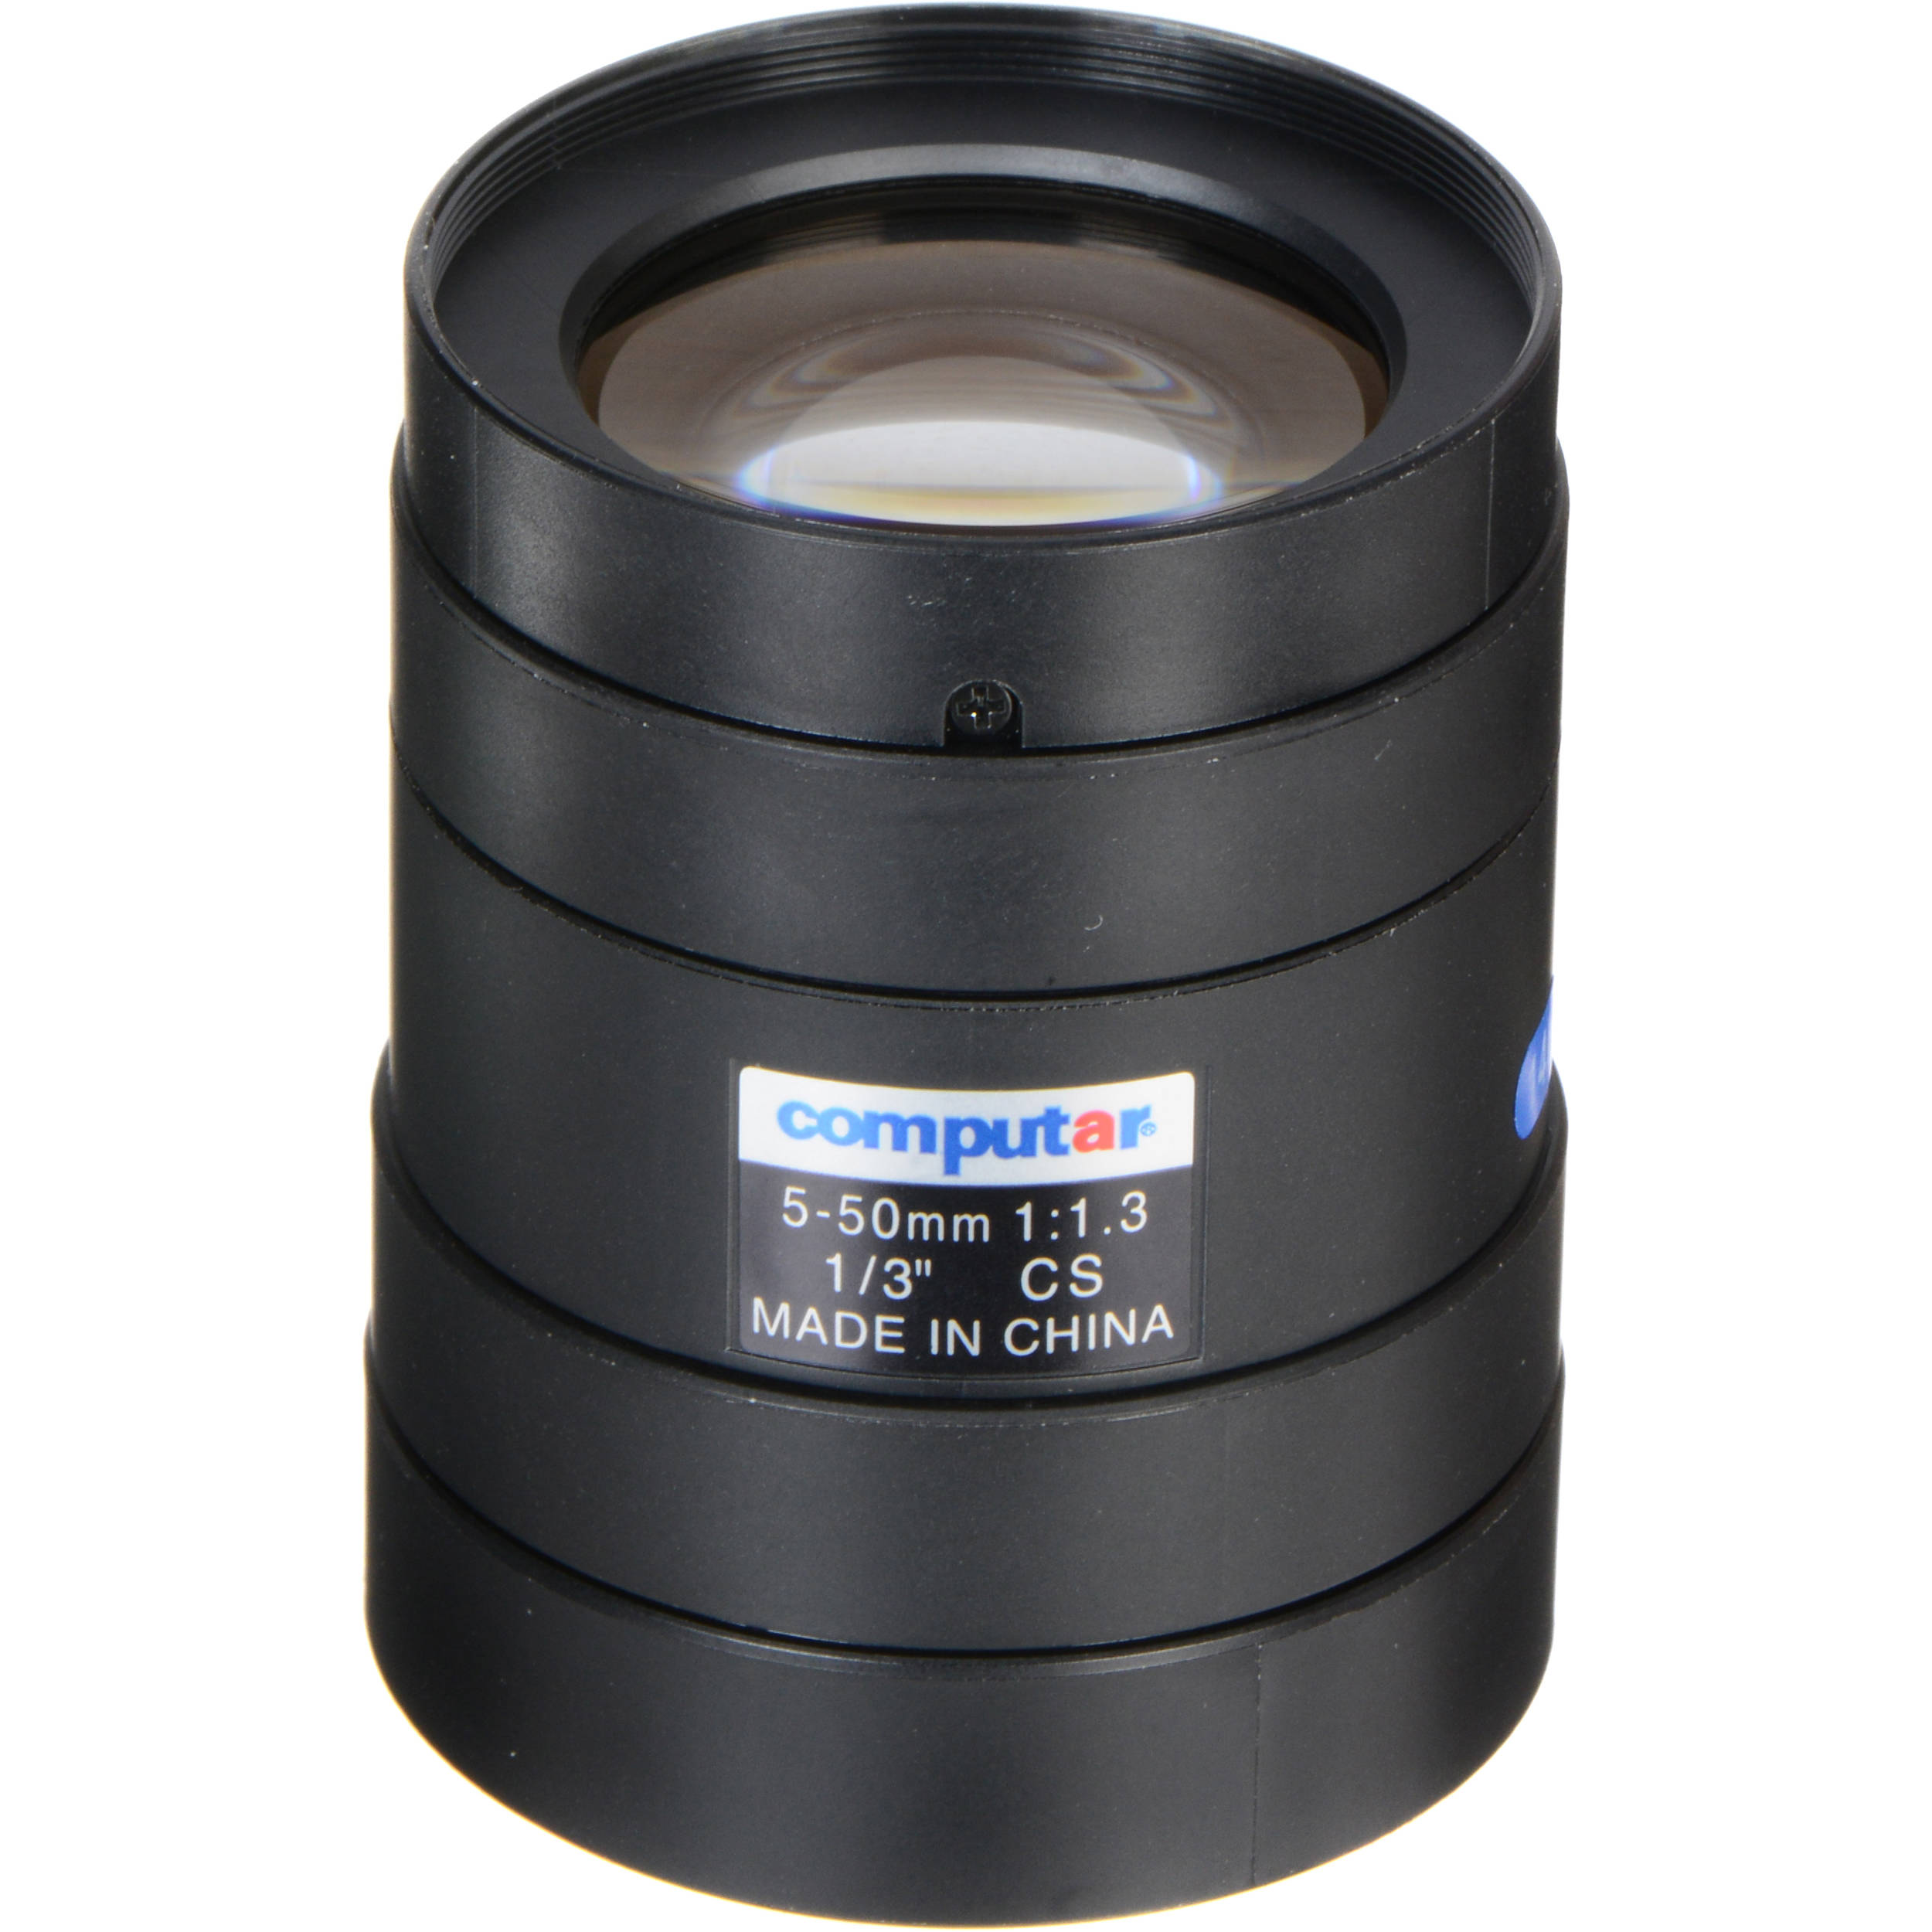 computar CS-Mount 5-50mm Varifocal Lens T10Z0513CS B&H Photo